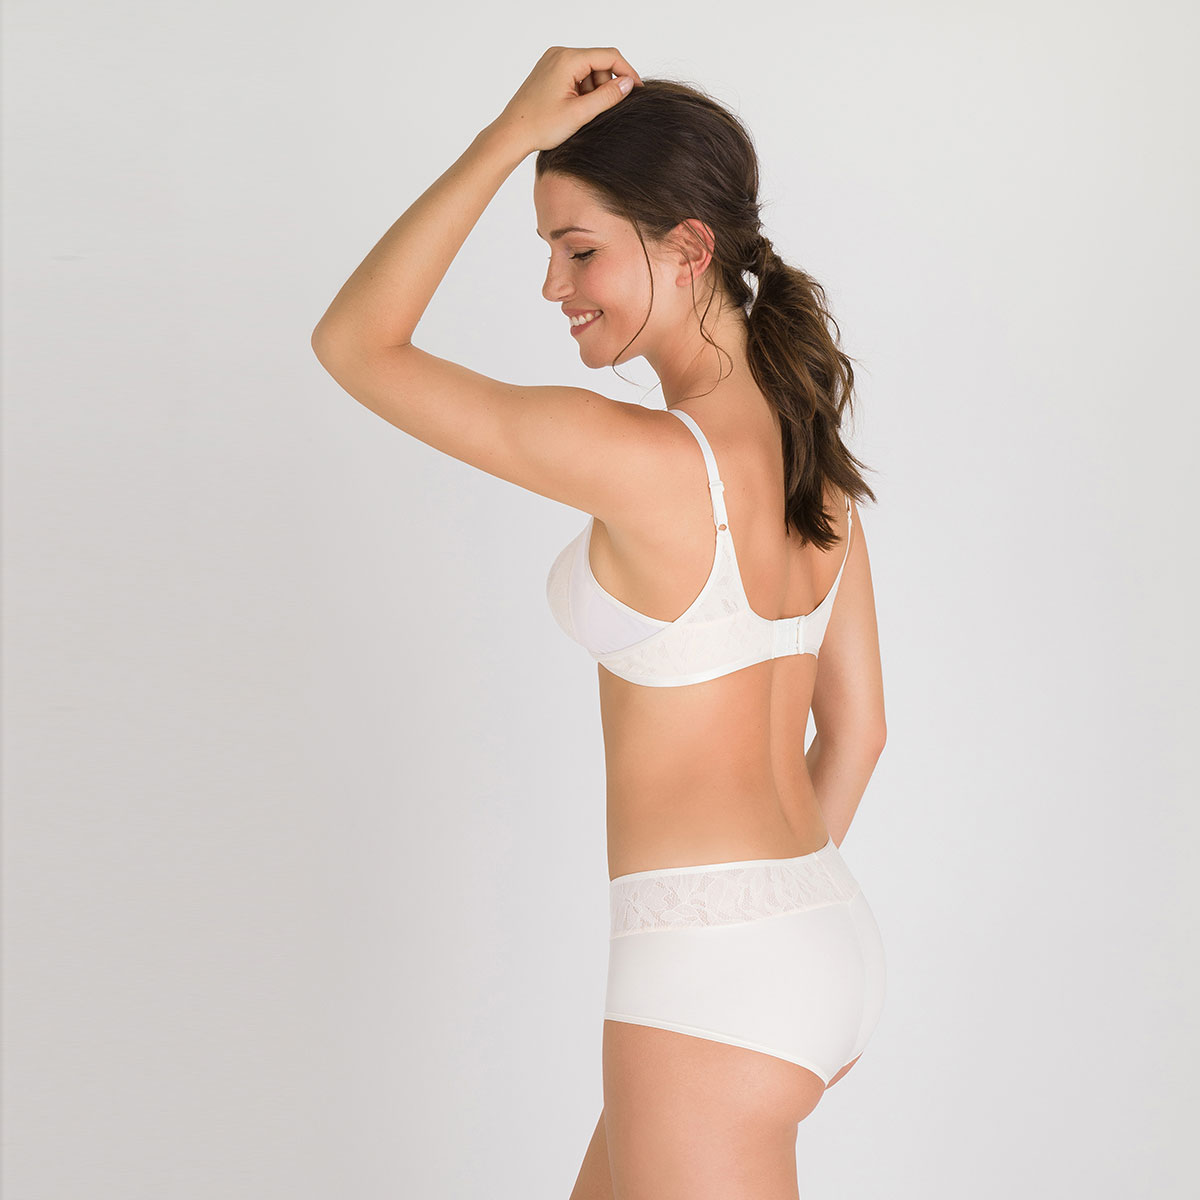 Shorty avorio - Ideal Beauty Lace, , PLAYTEX